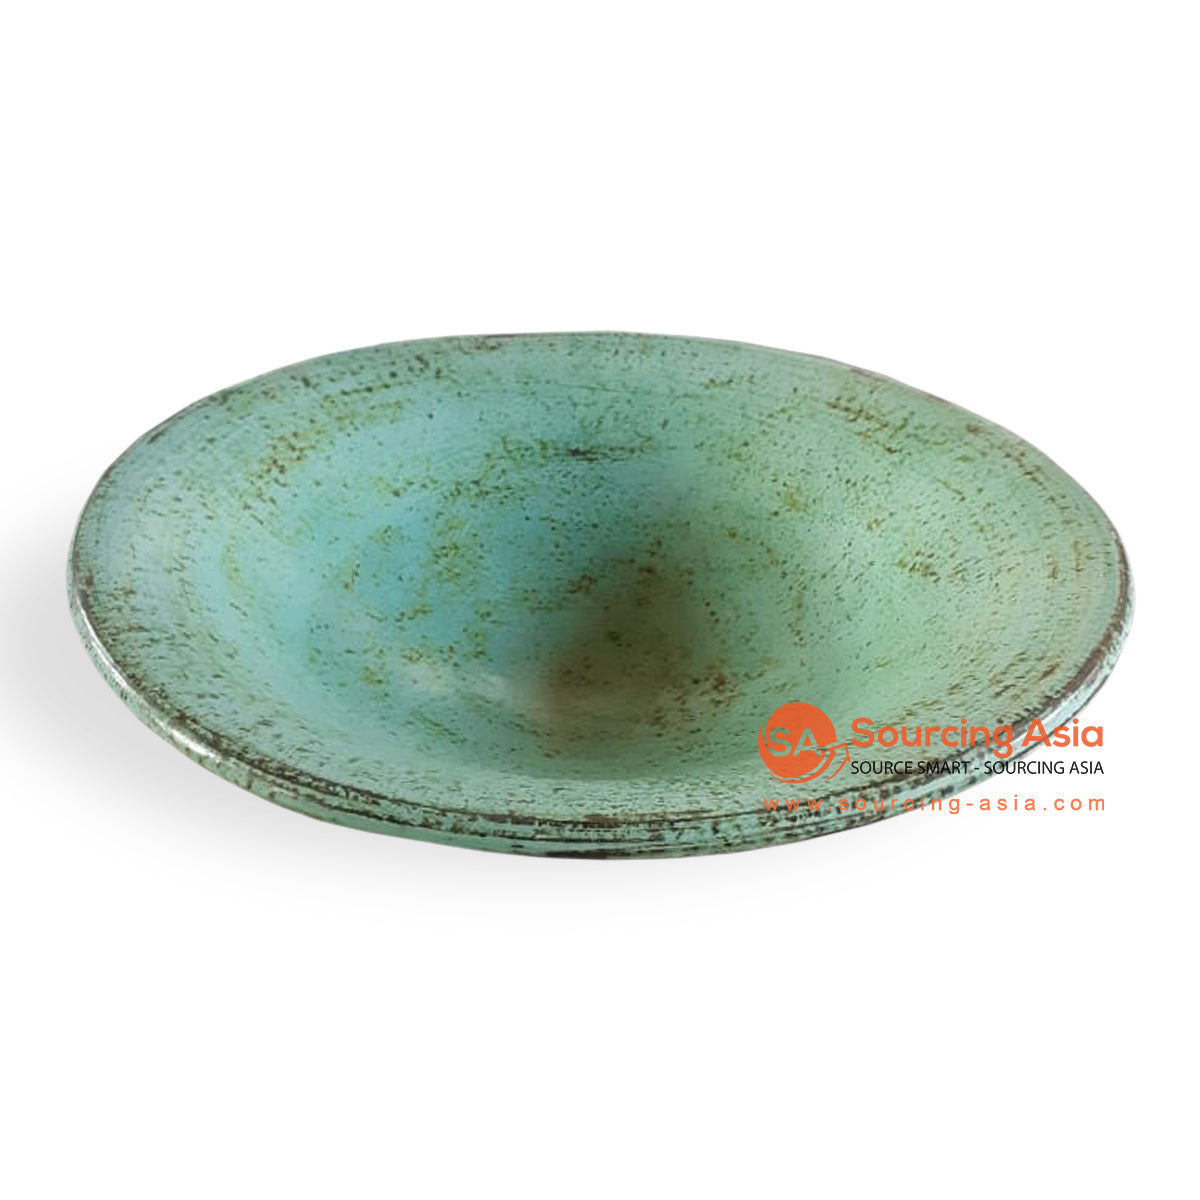 JNP128-KY23 TERRACOTTA BOWL